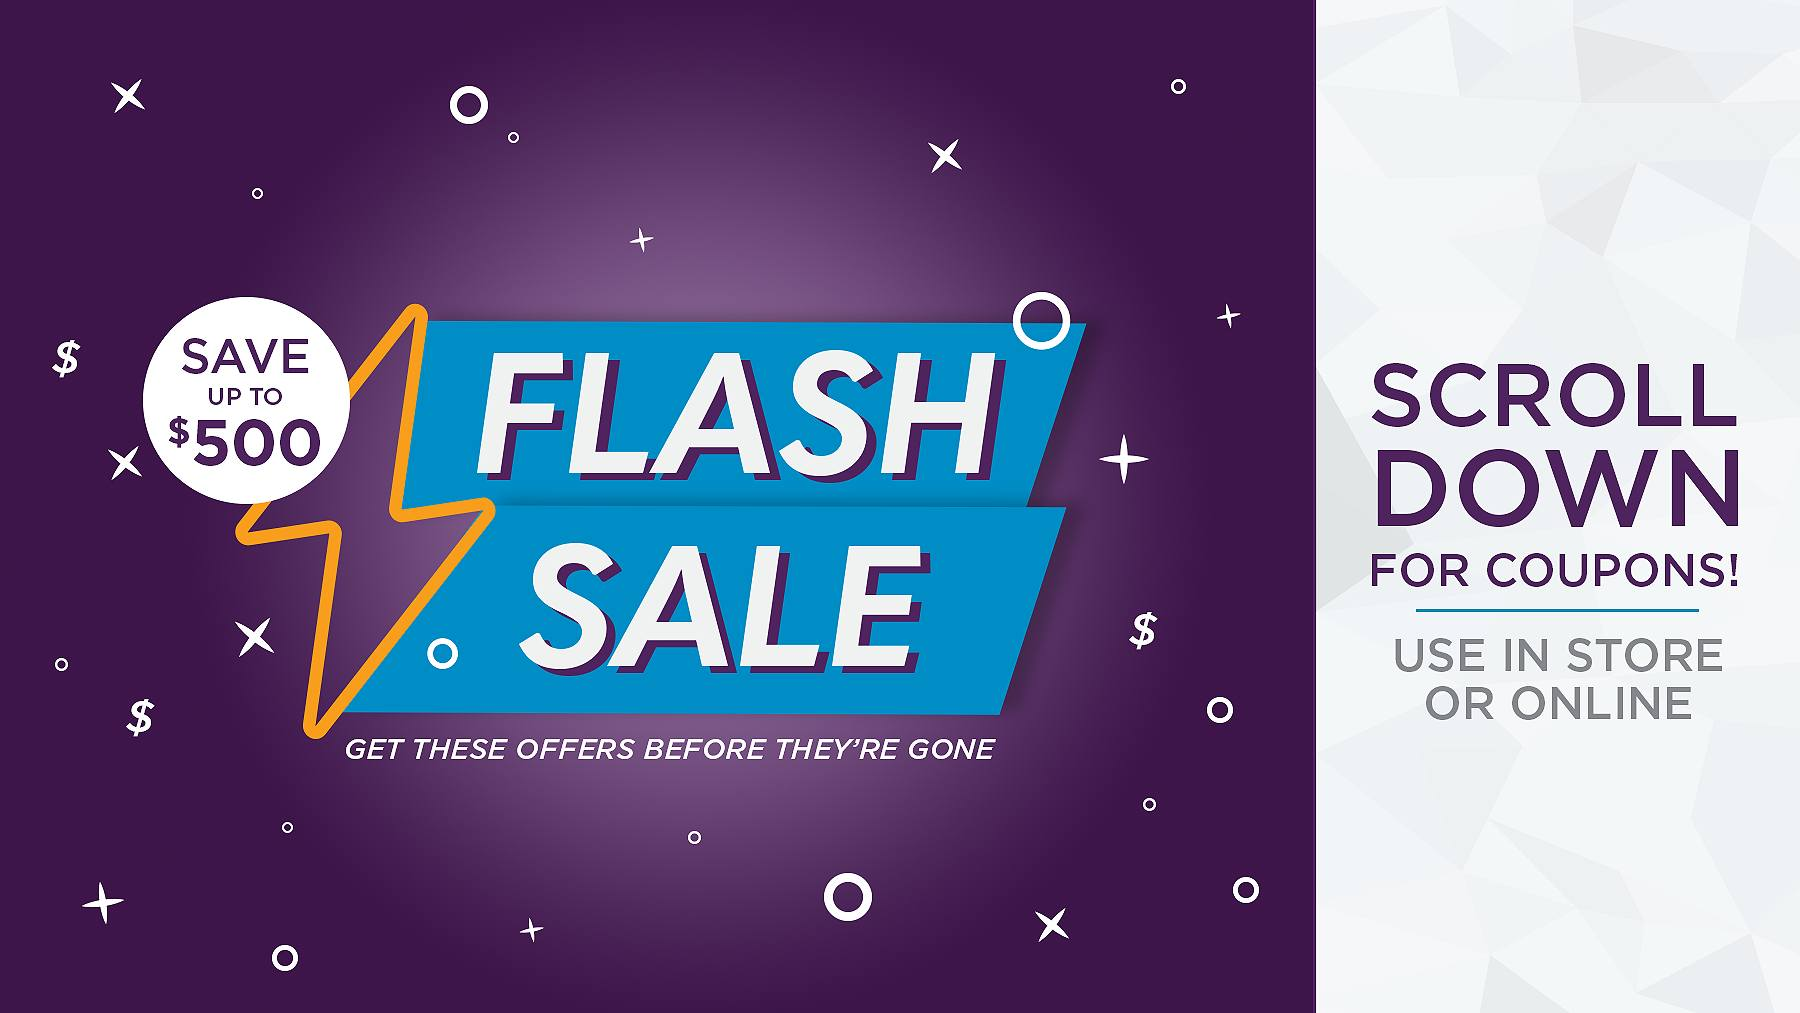 Flash Sale - Save $50 to $500